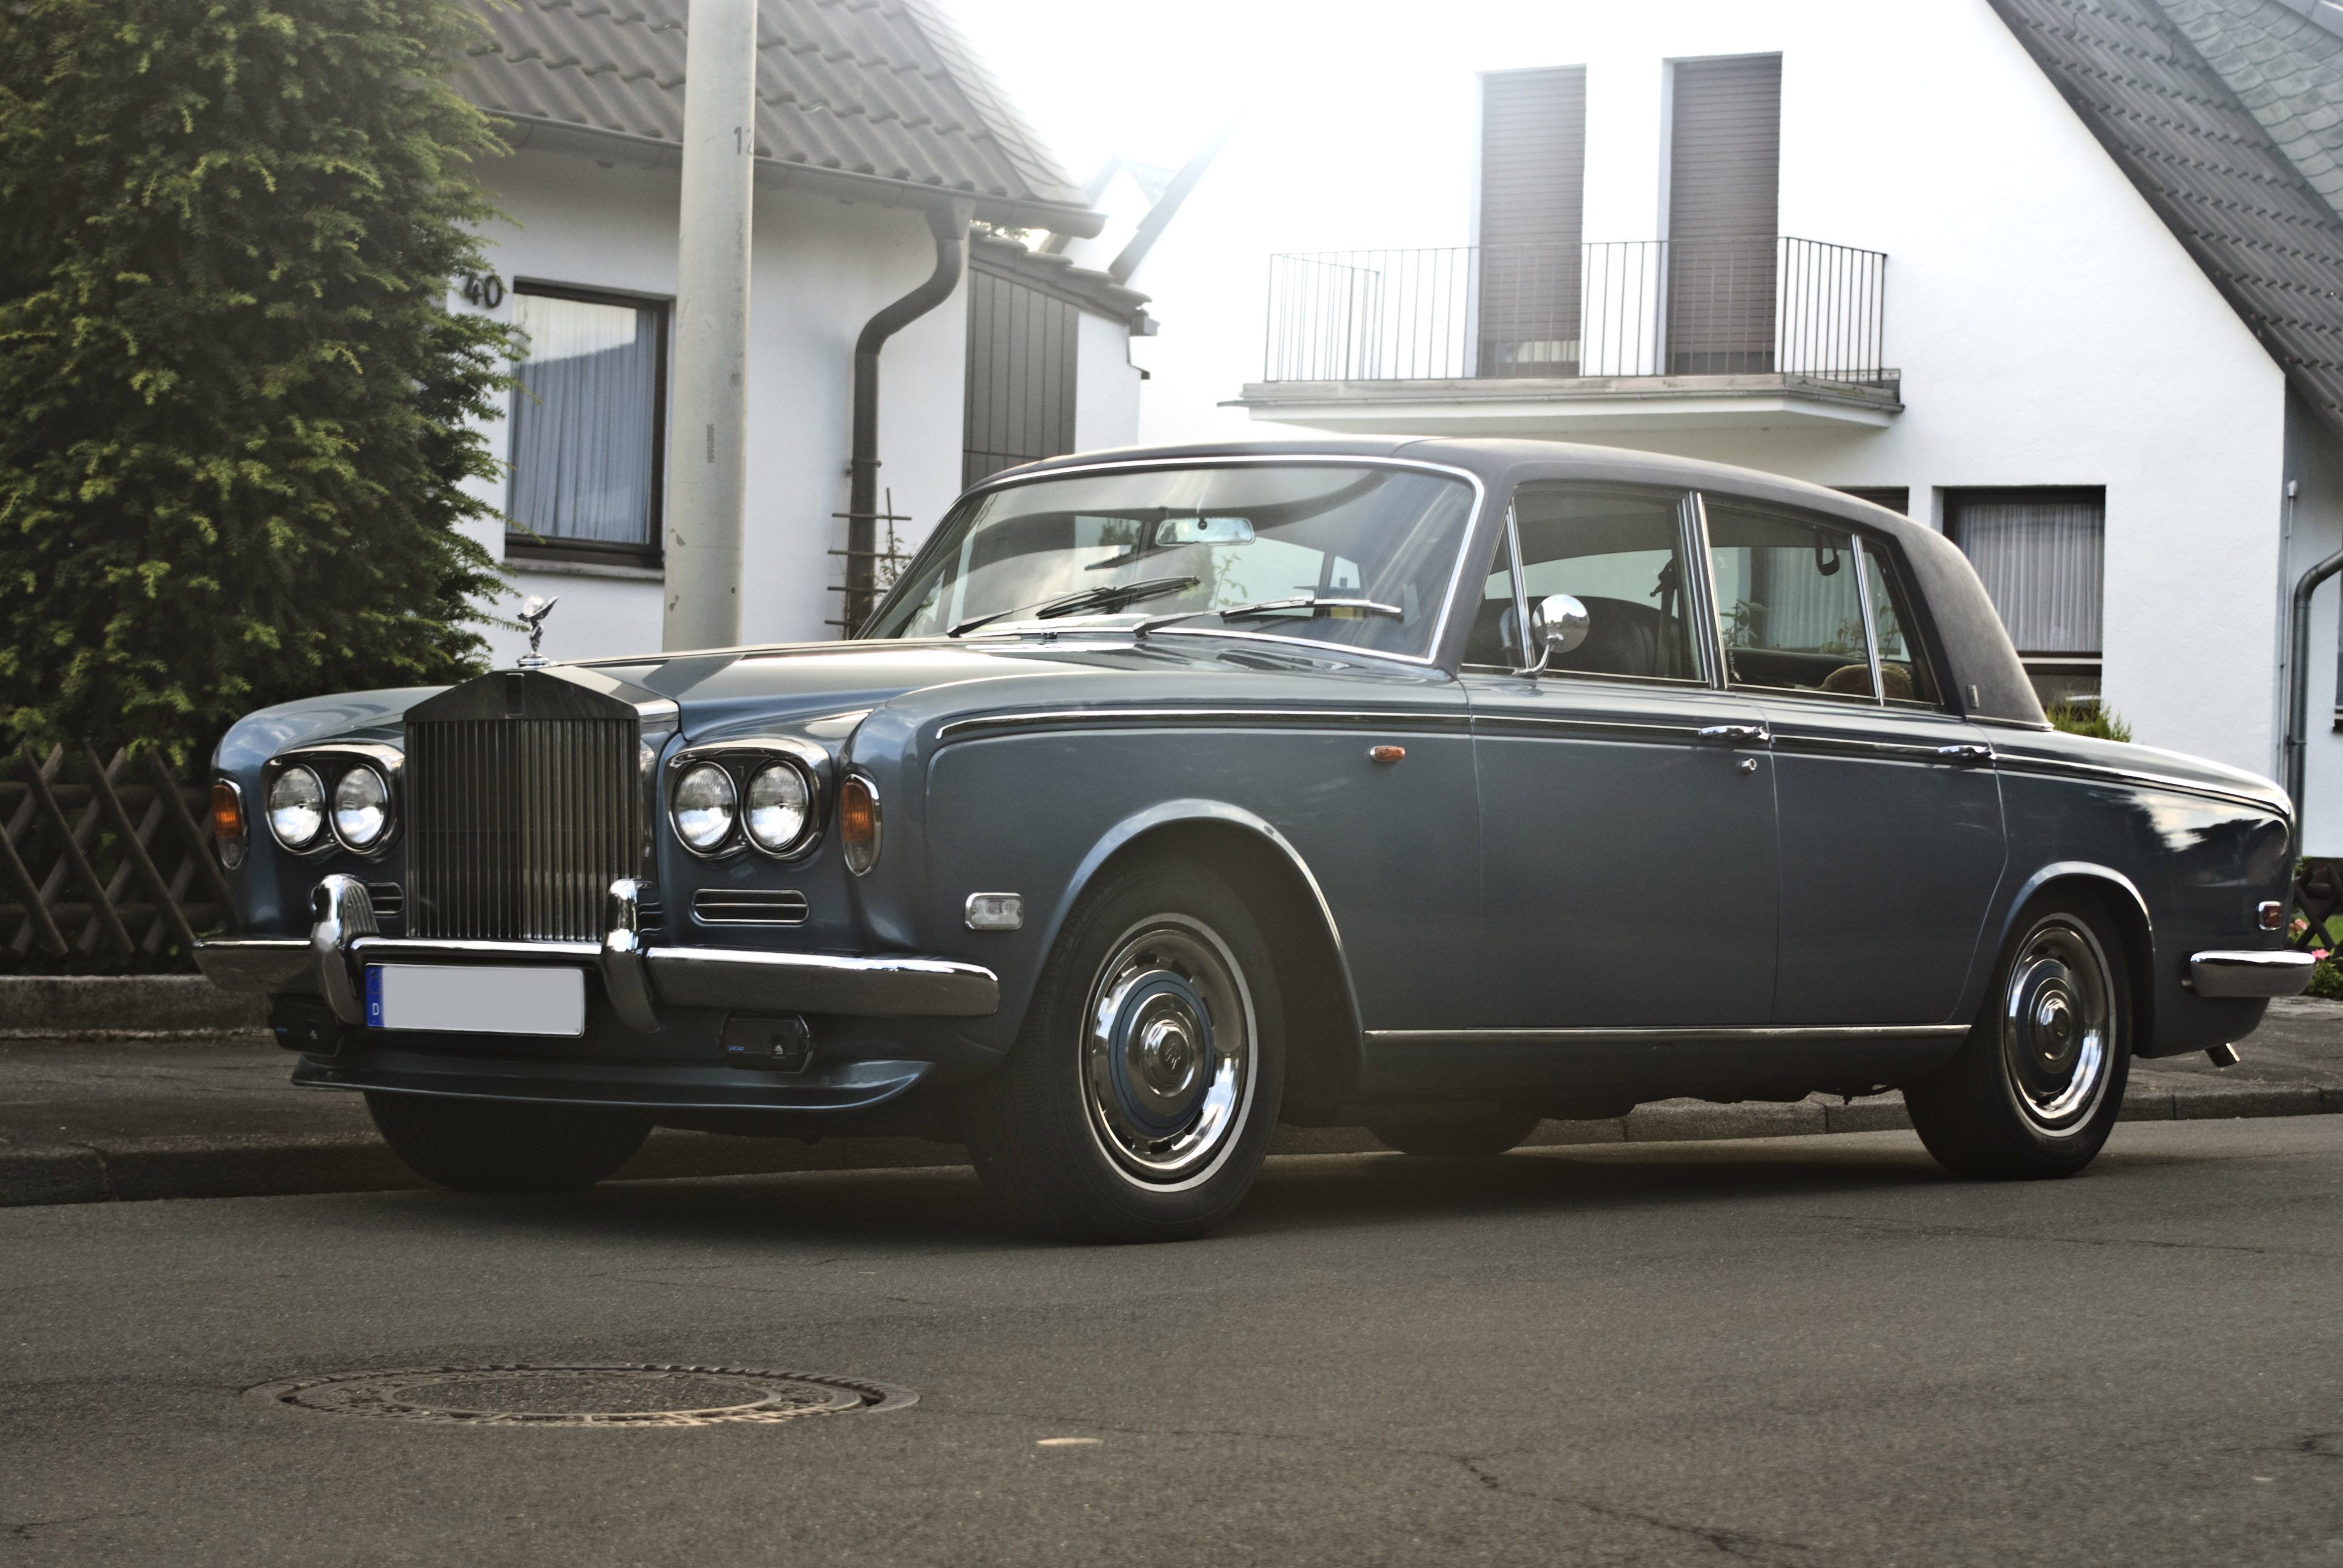 rolls royce silver shadow wallpaper hd for mob 19326 wallpaper. Black Bedroom Furniture Sets. Home Design Ideas